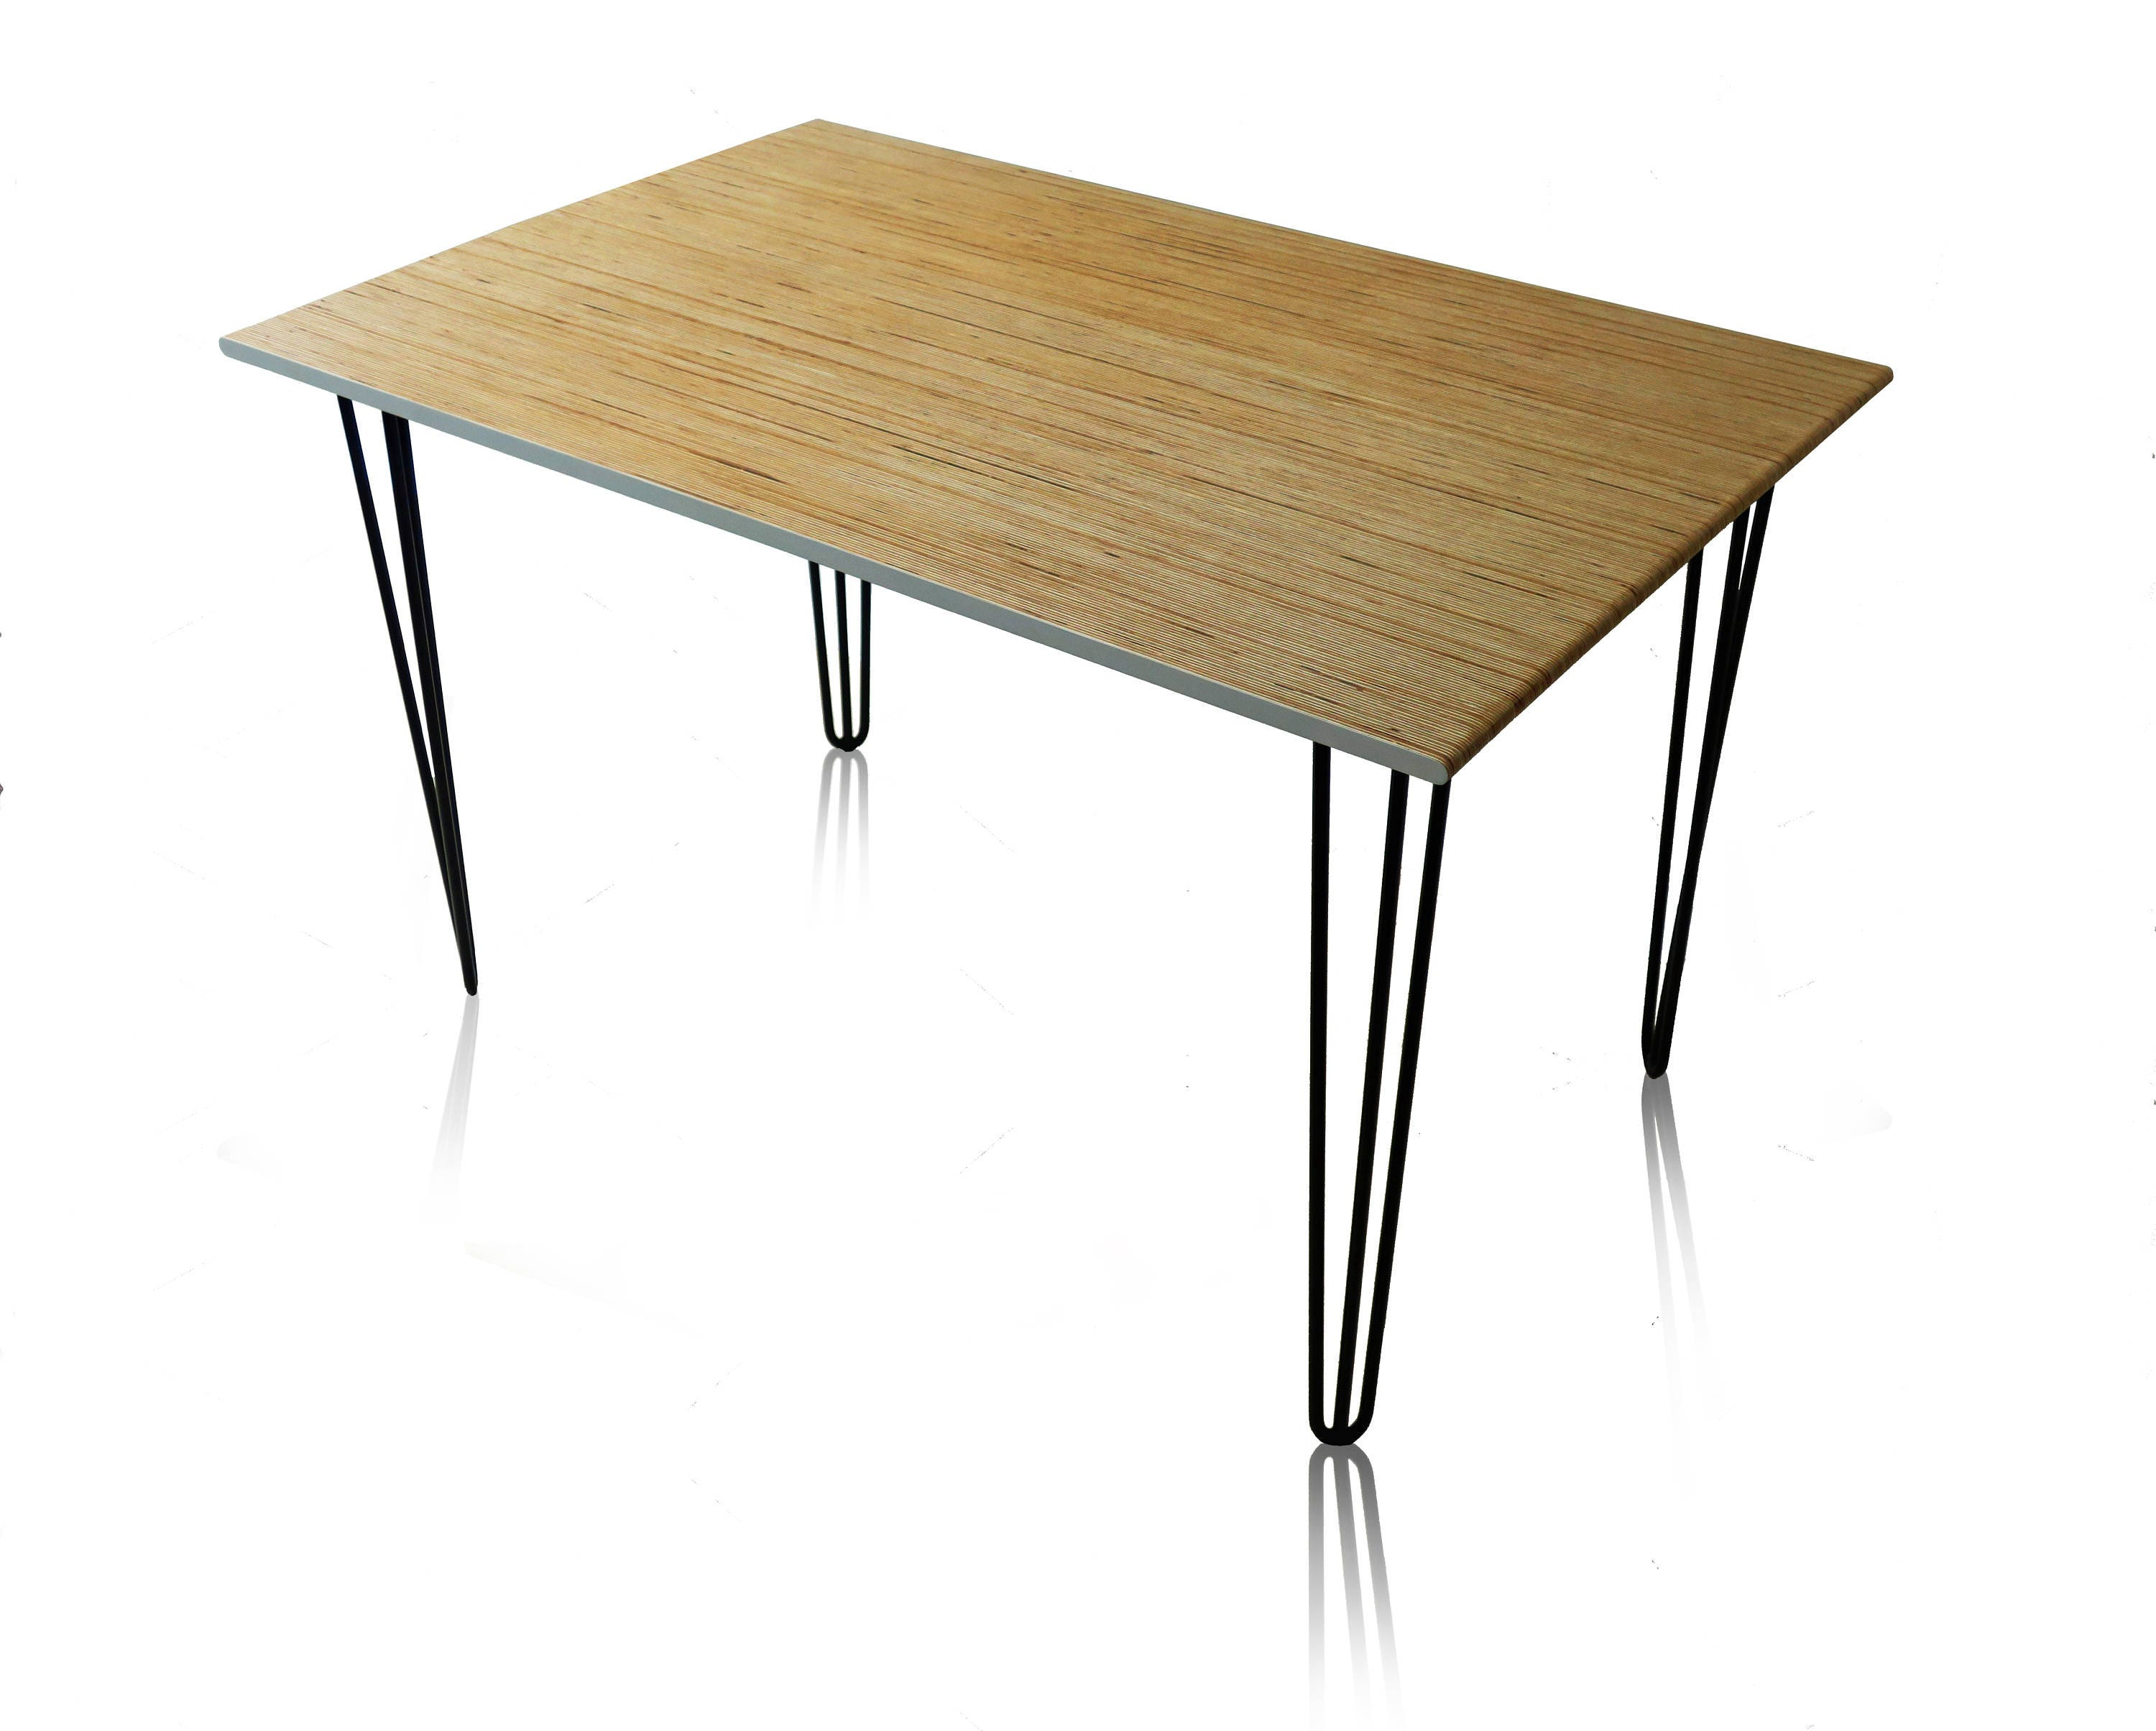 Incredible Scandinavian Mid Century Modern Desk Birch Plywood With Steel Hairpin Legs Custom Sizes Available Download Free Architecture Designs Scobabritishbridgeorg